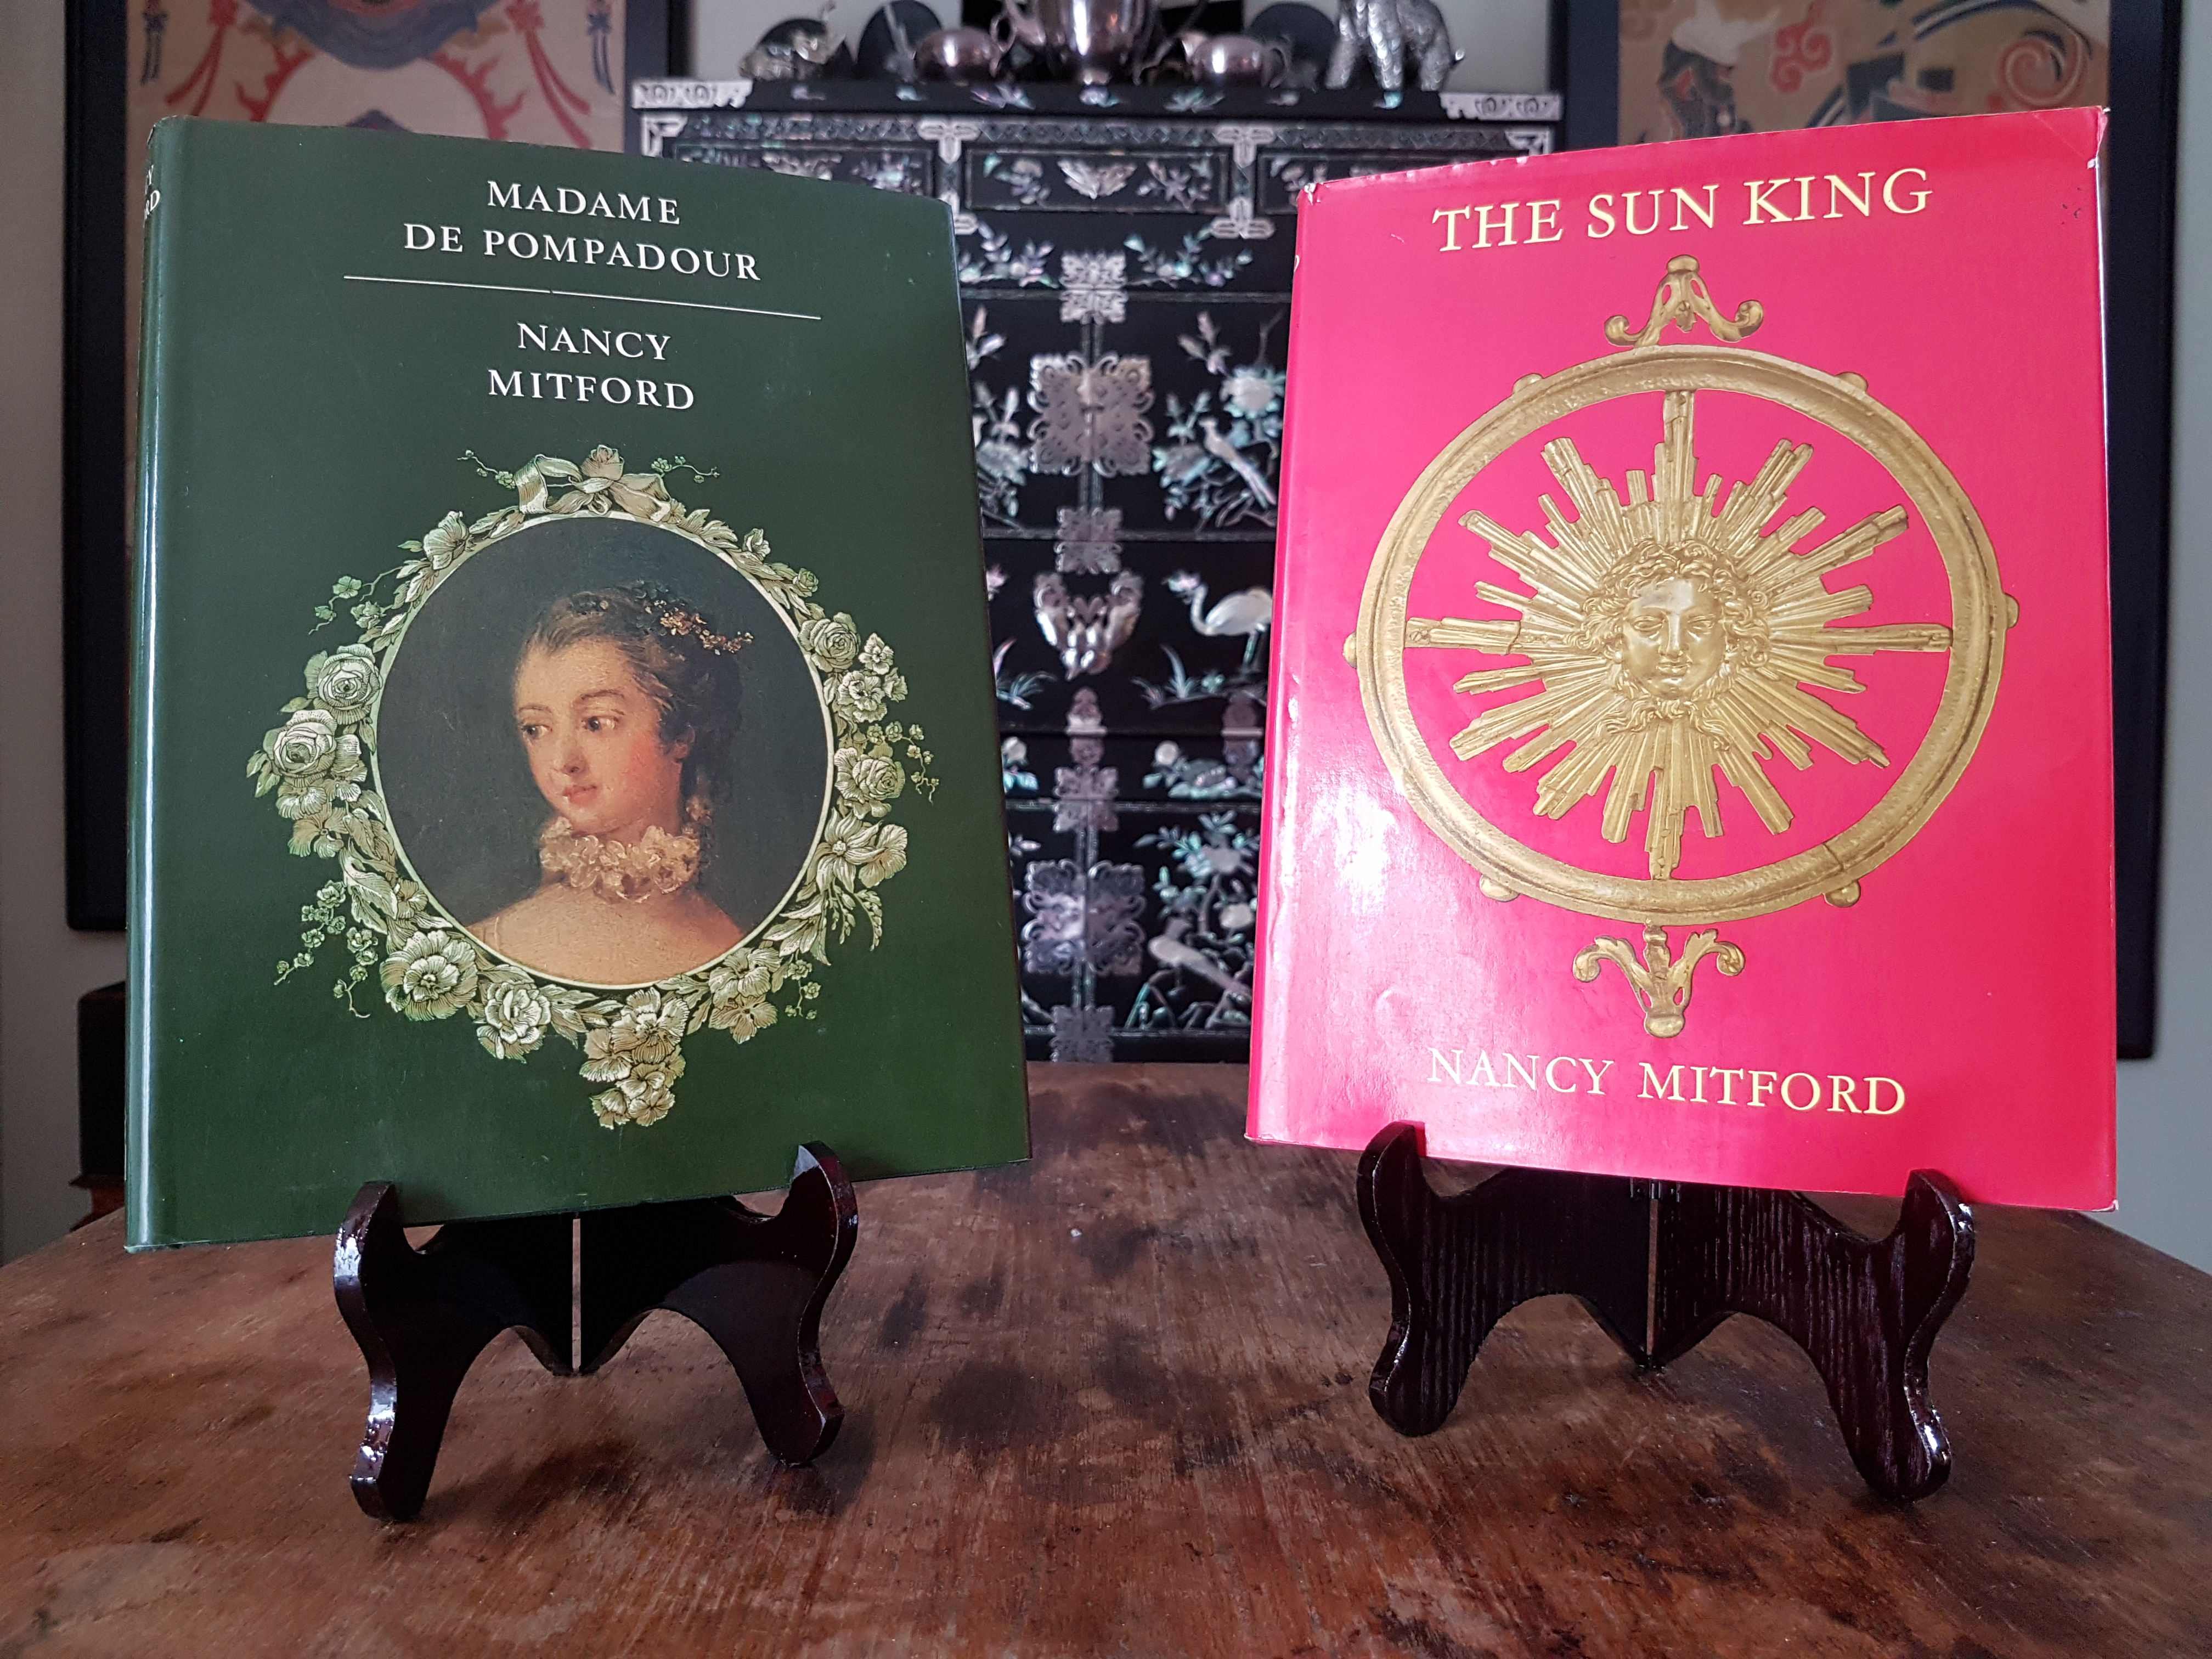 Madame de Pompadour and The Sun King by Nancy Mitford.